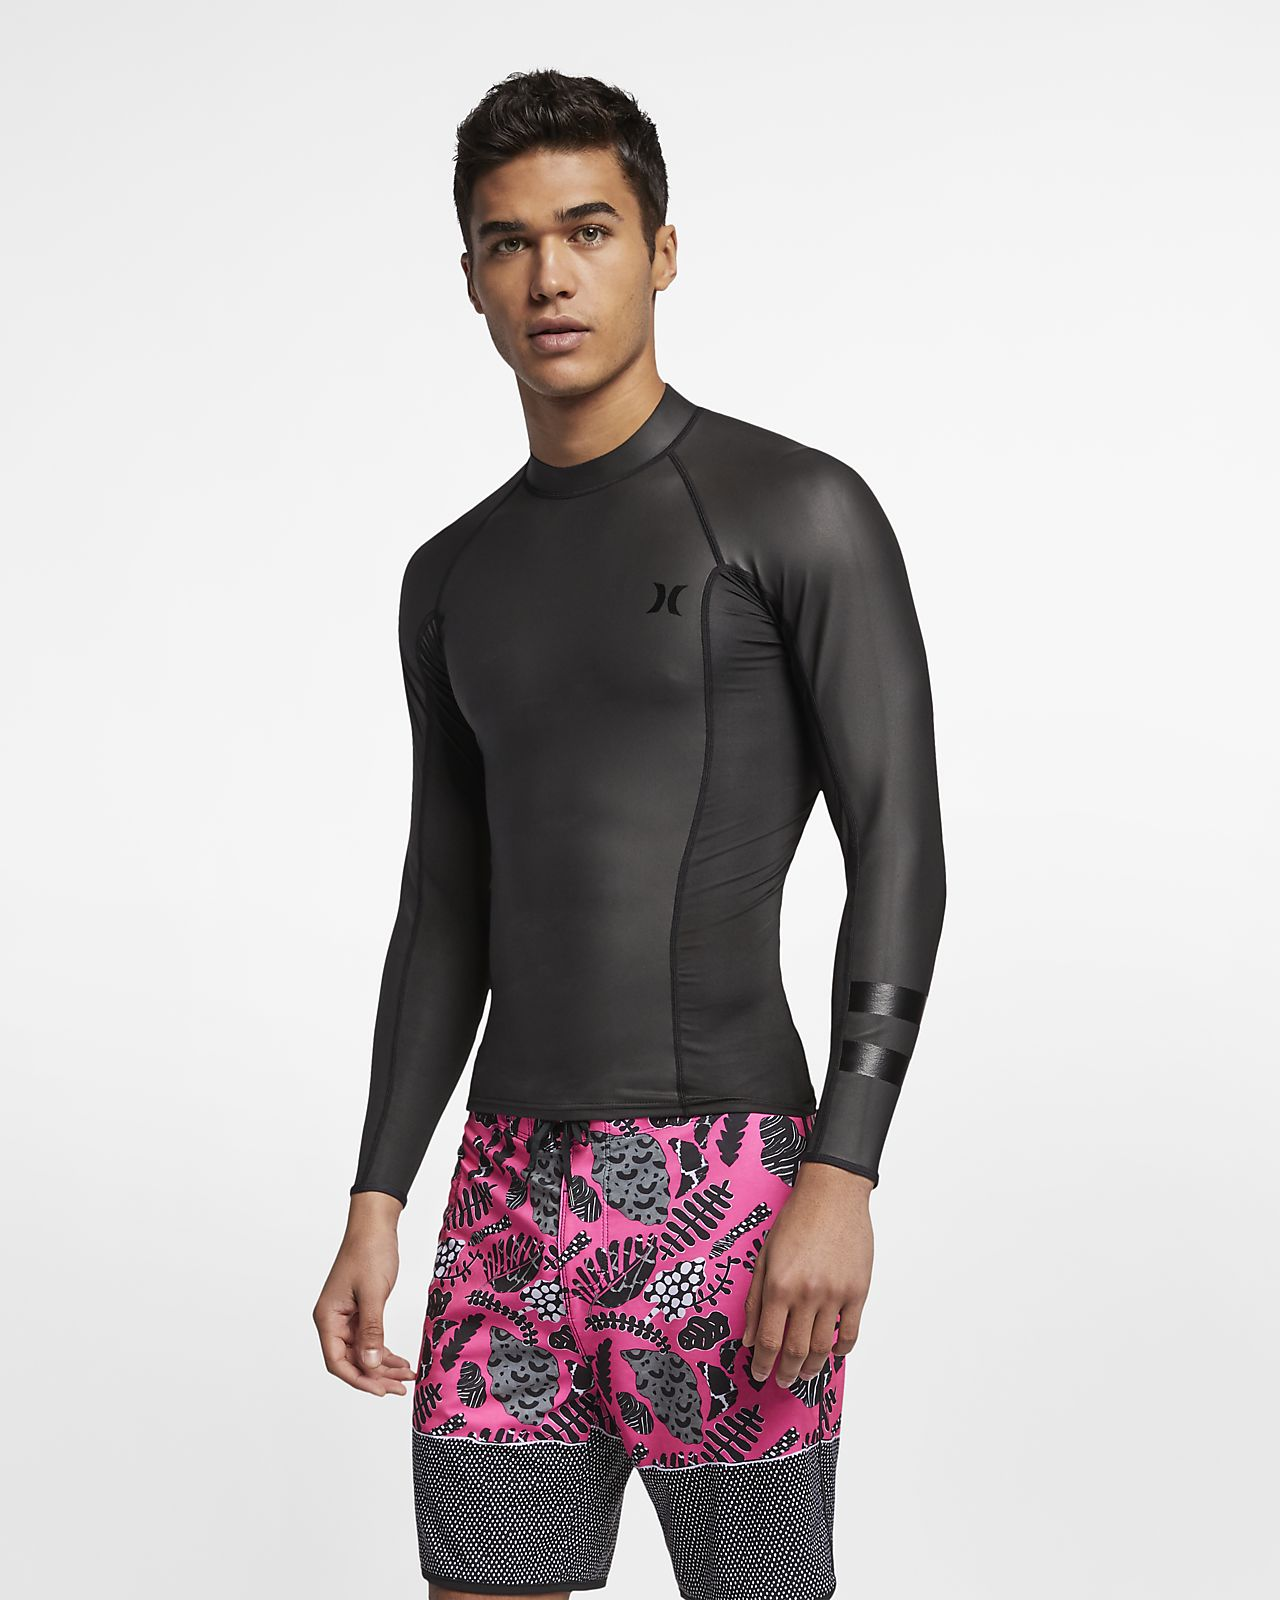 Hurley Pro Max Men's Long-Sleeve Surf Top